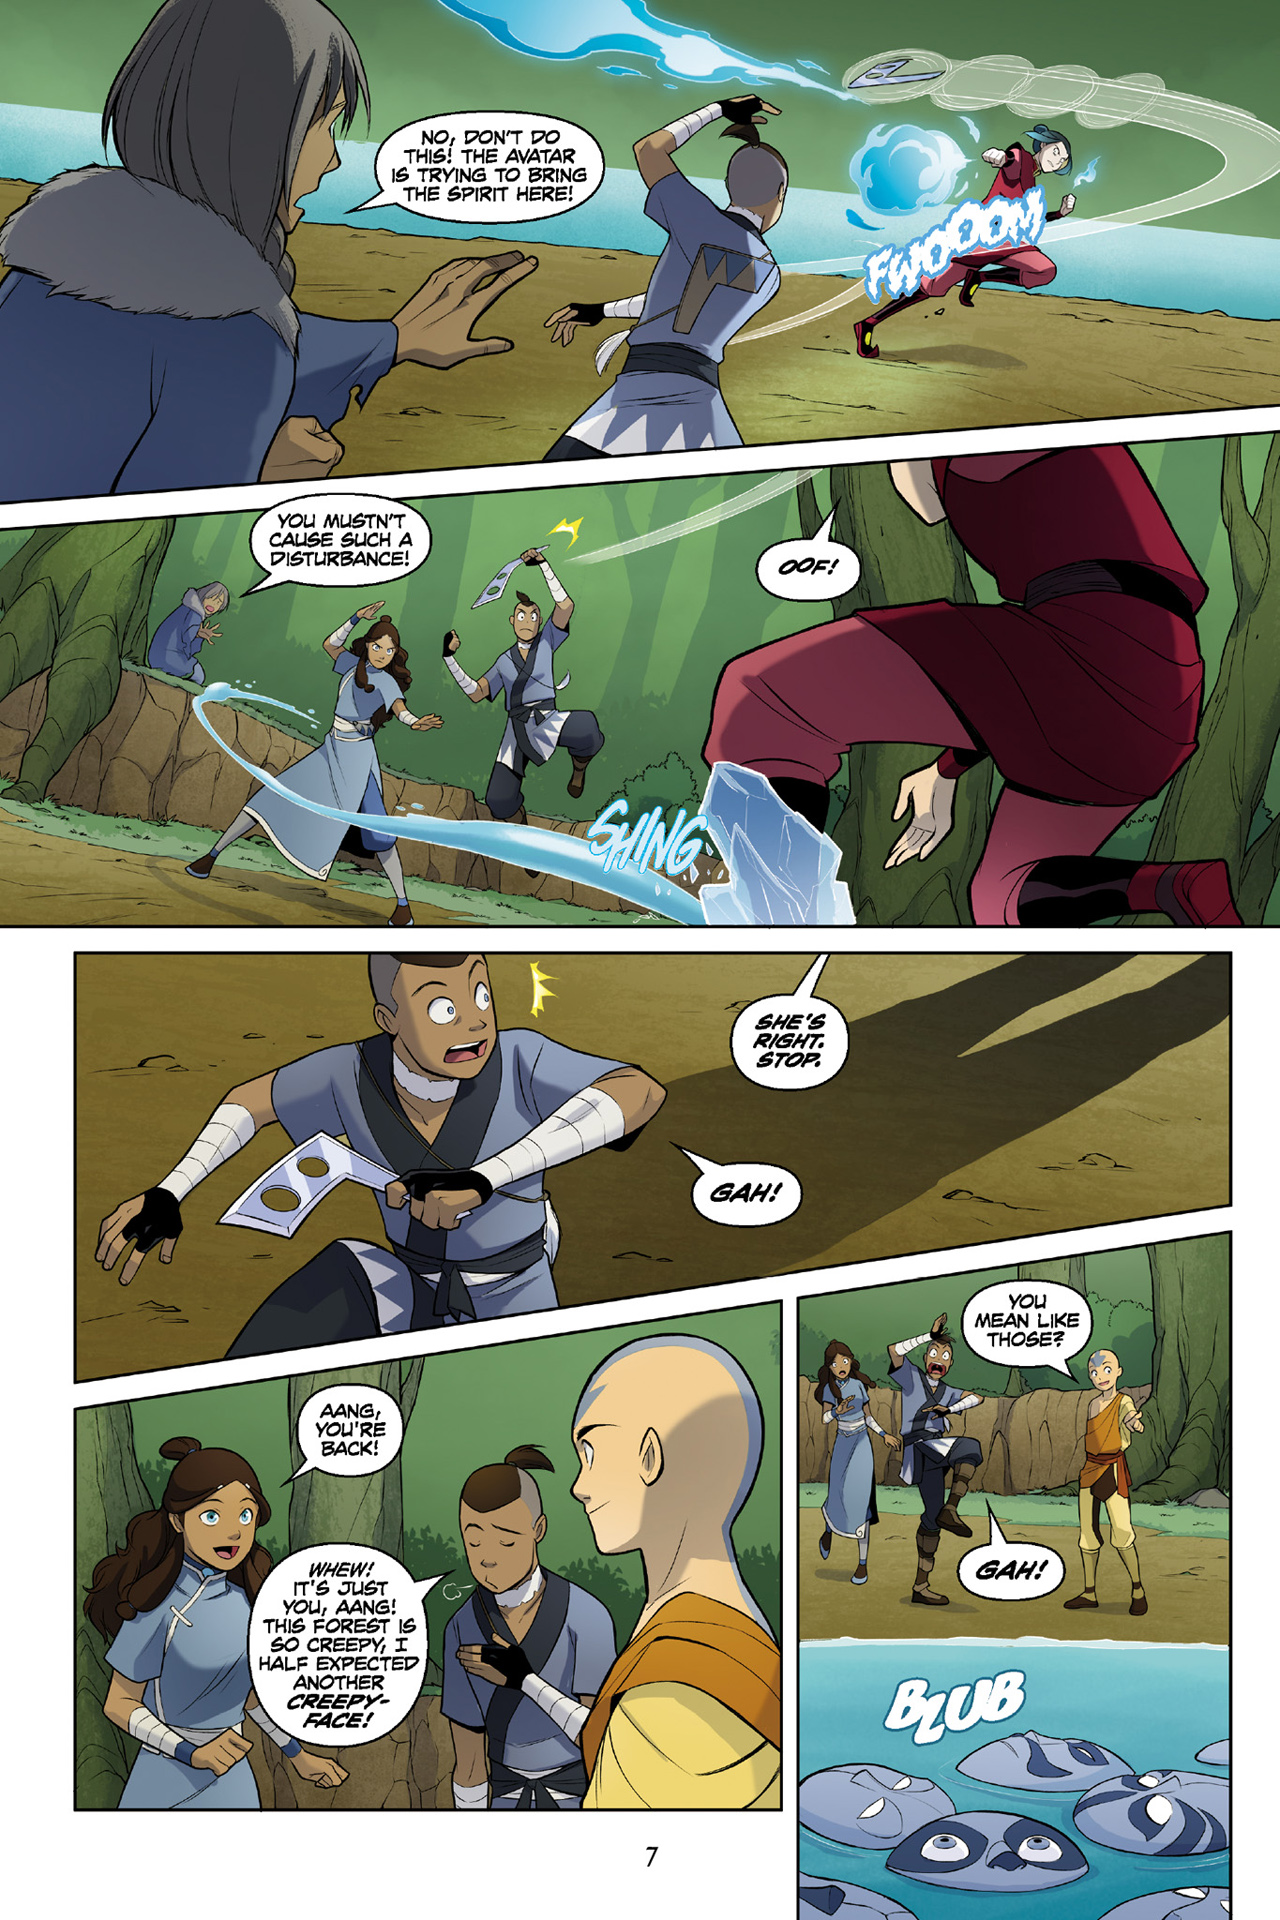 Read online Nickelodeon Avatar: The Last Airbender - The Search comic -  Issue # Part 3 - 8